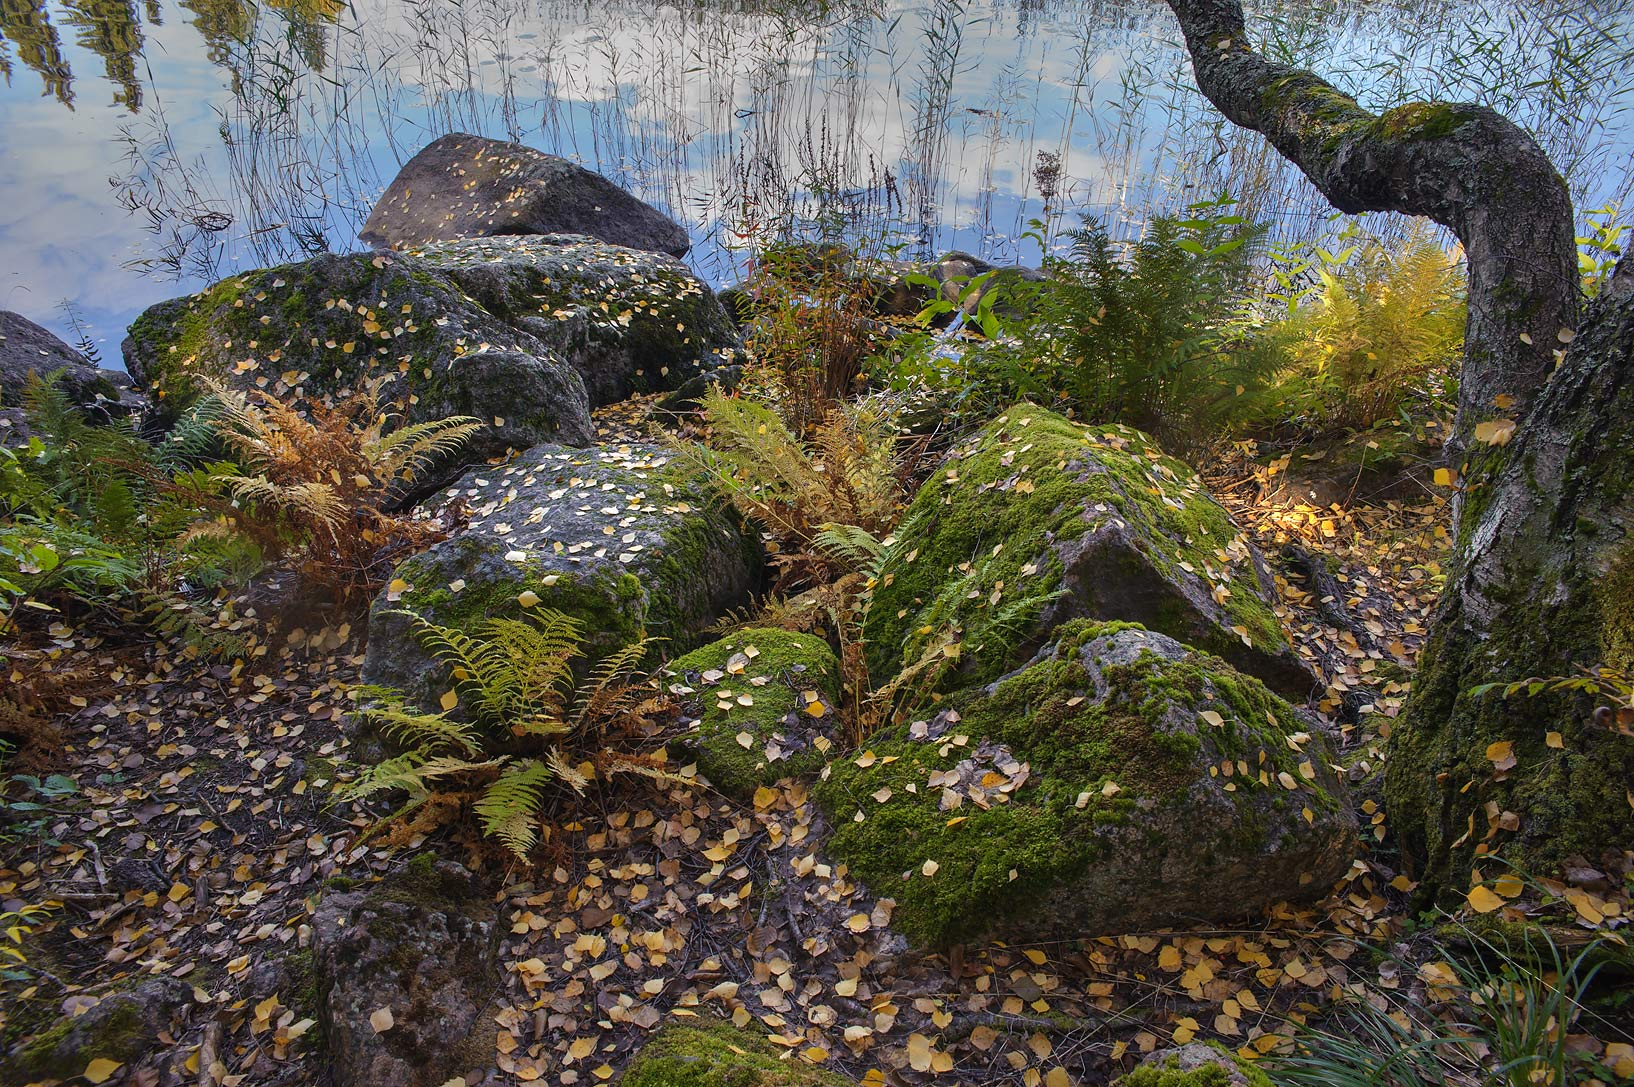 Rocky shore of Gulf of Finland in south area of Monrepo (Mon Repos) Park. Vyborg, Russia